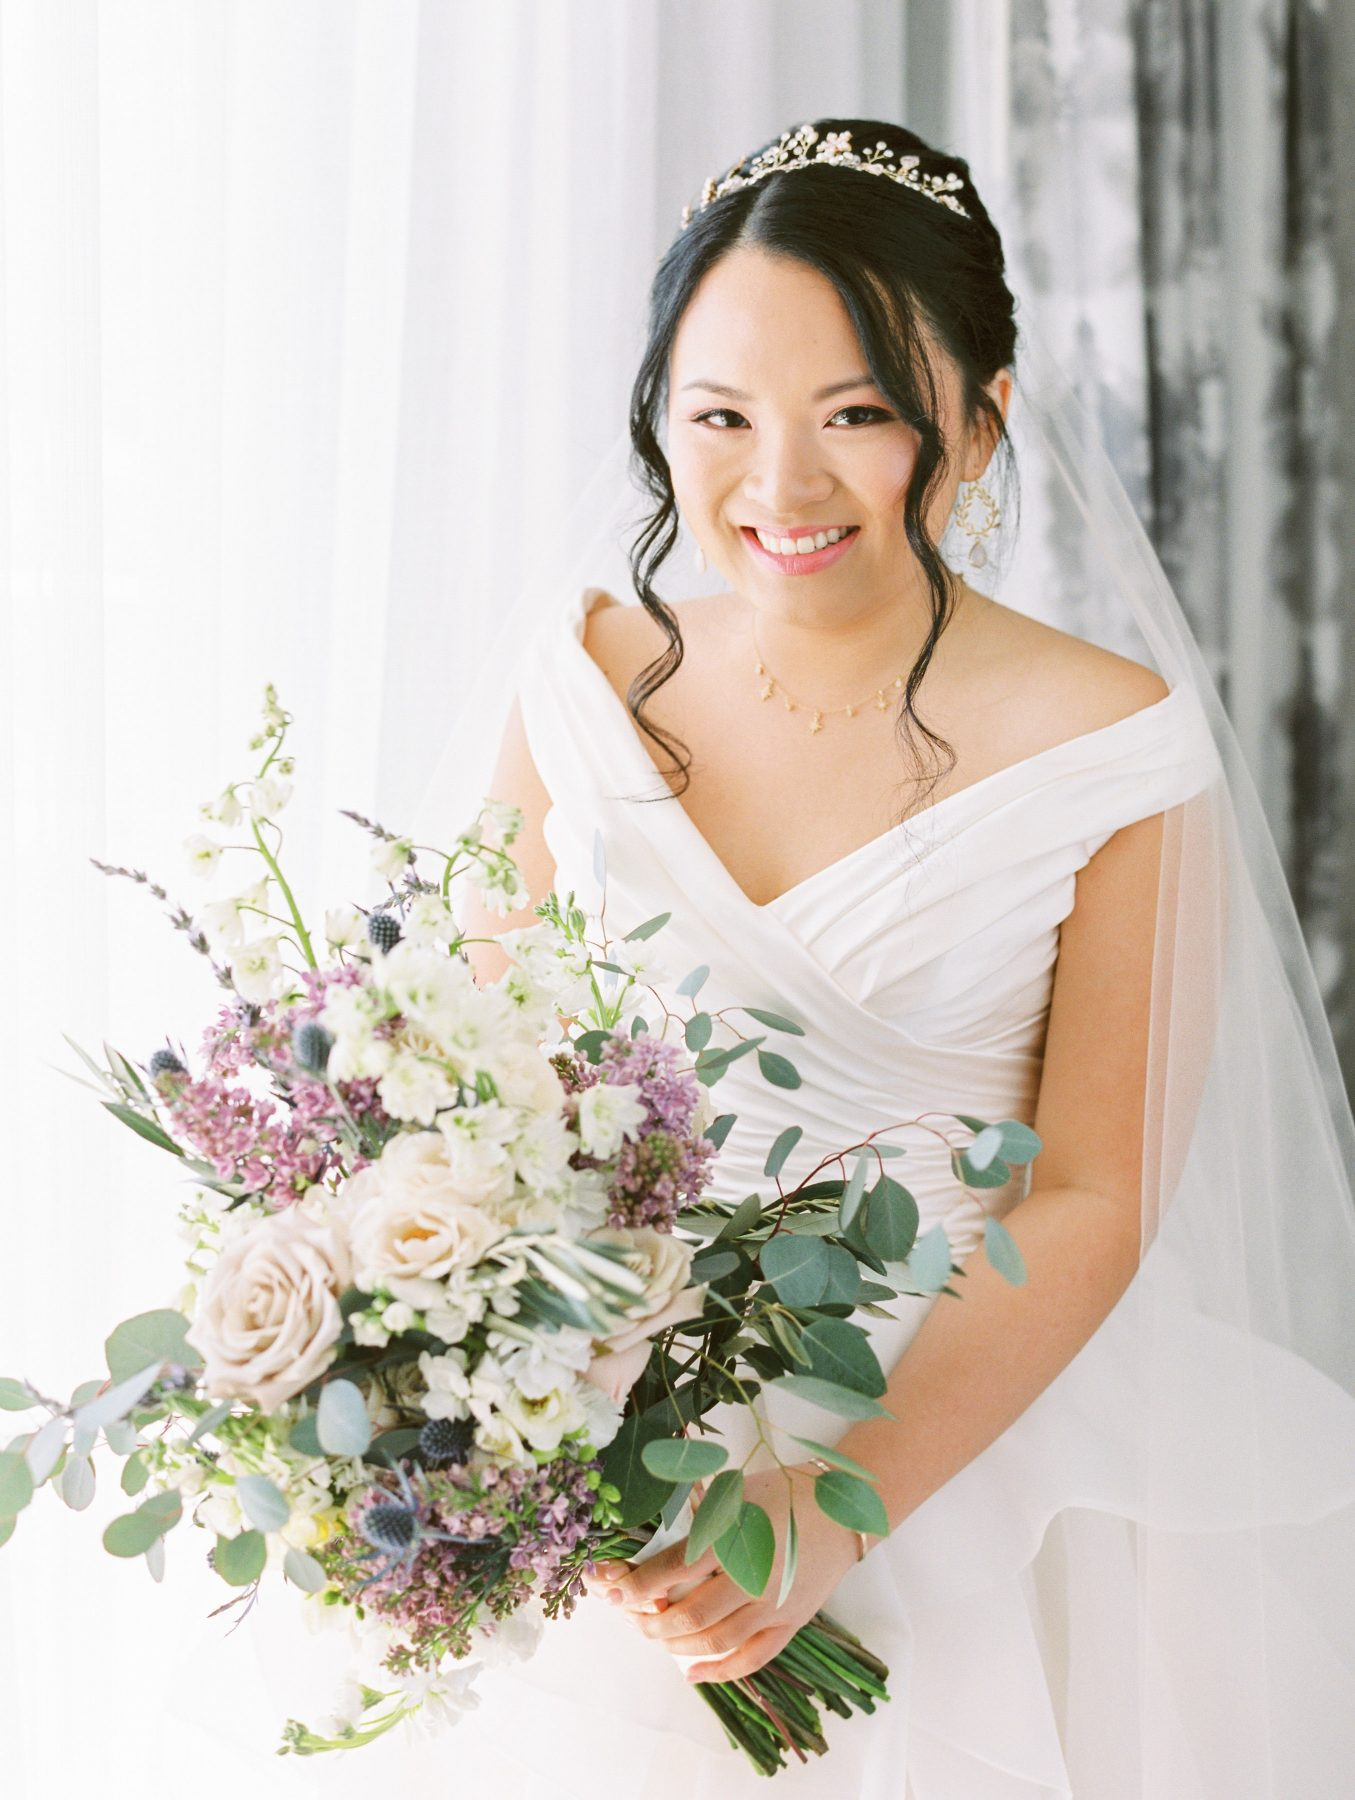 Bride in off the shoulder gown and tiara with white and purple bouquet